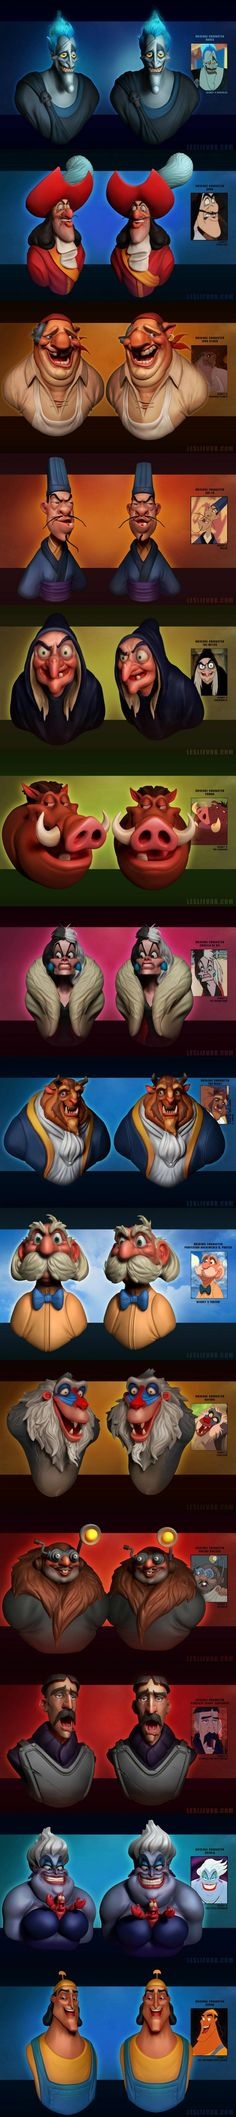 3D Renderings of Disney Characters